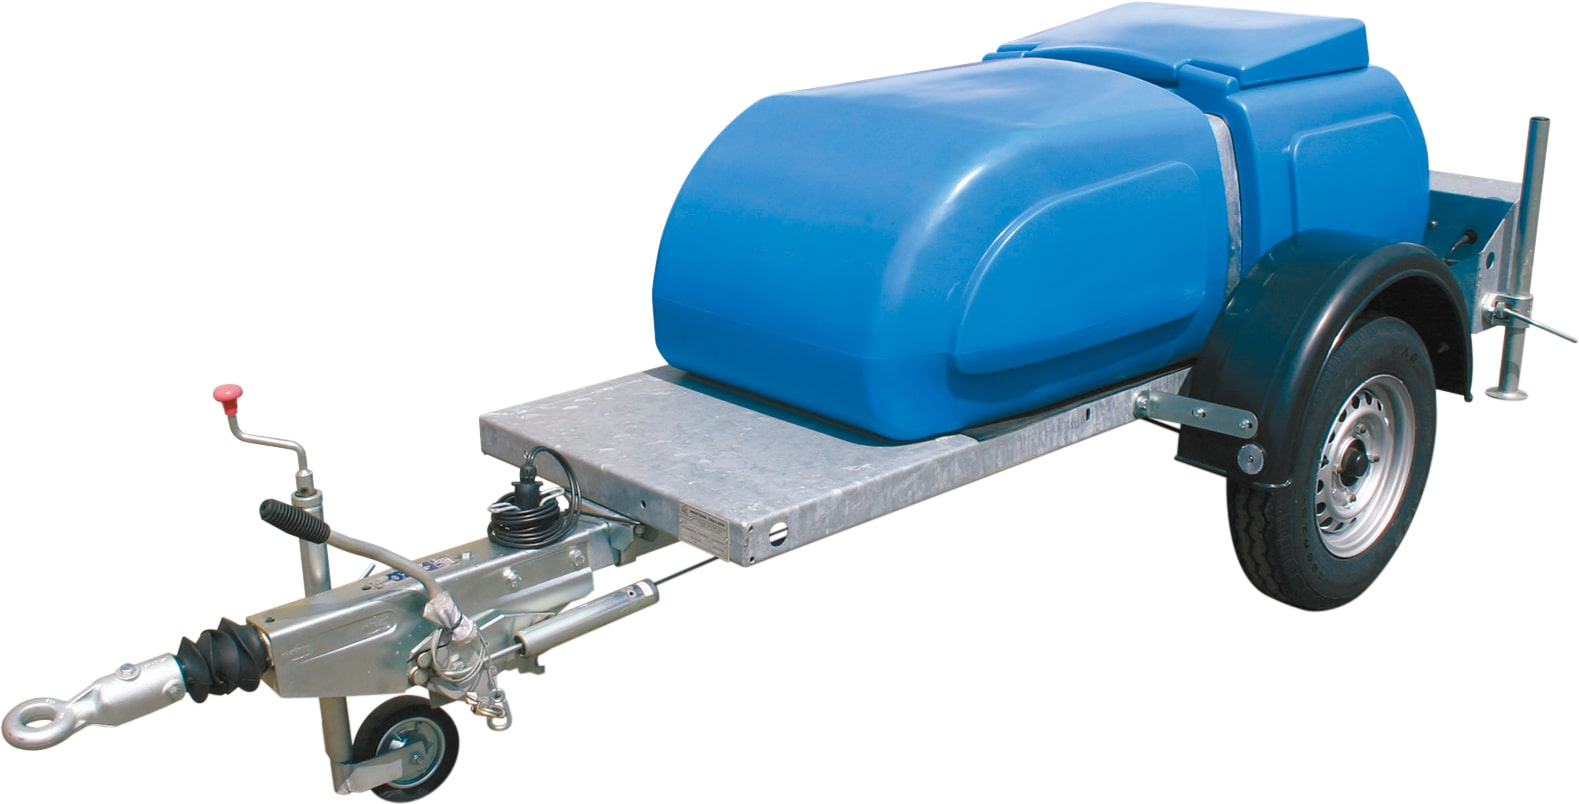 Western Global H-110P 500L Water Bowser Towable 235Kg